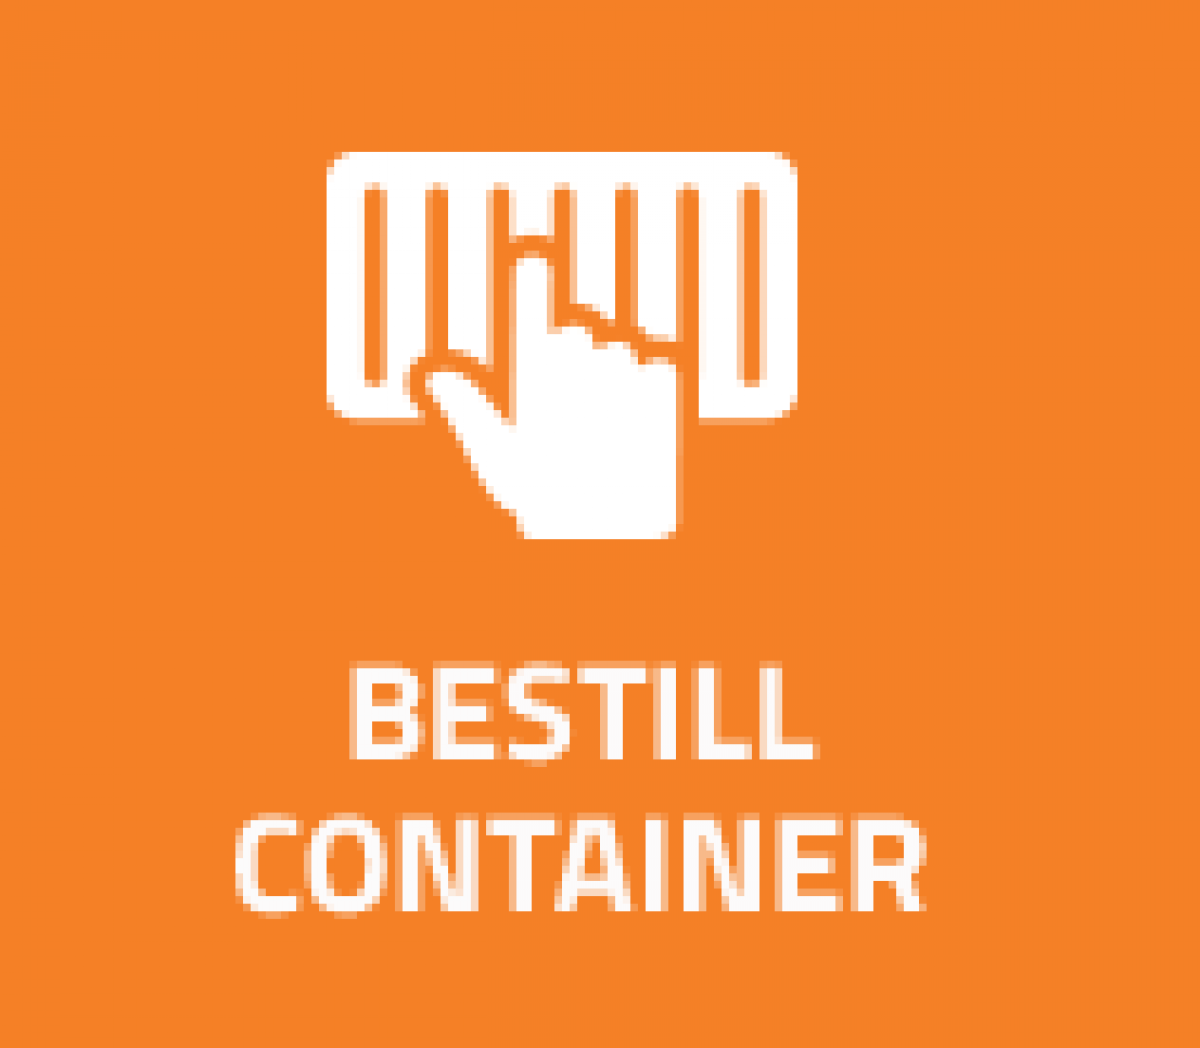 Bestill_container_orange